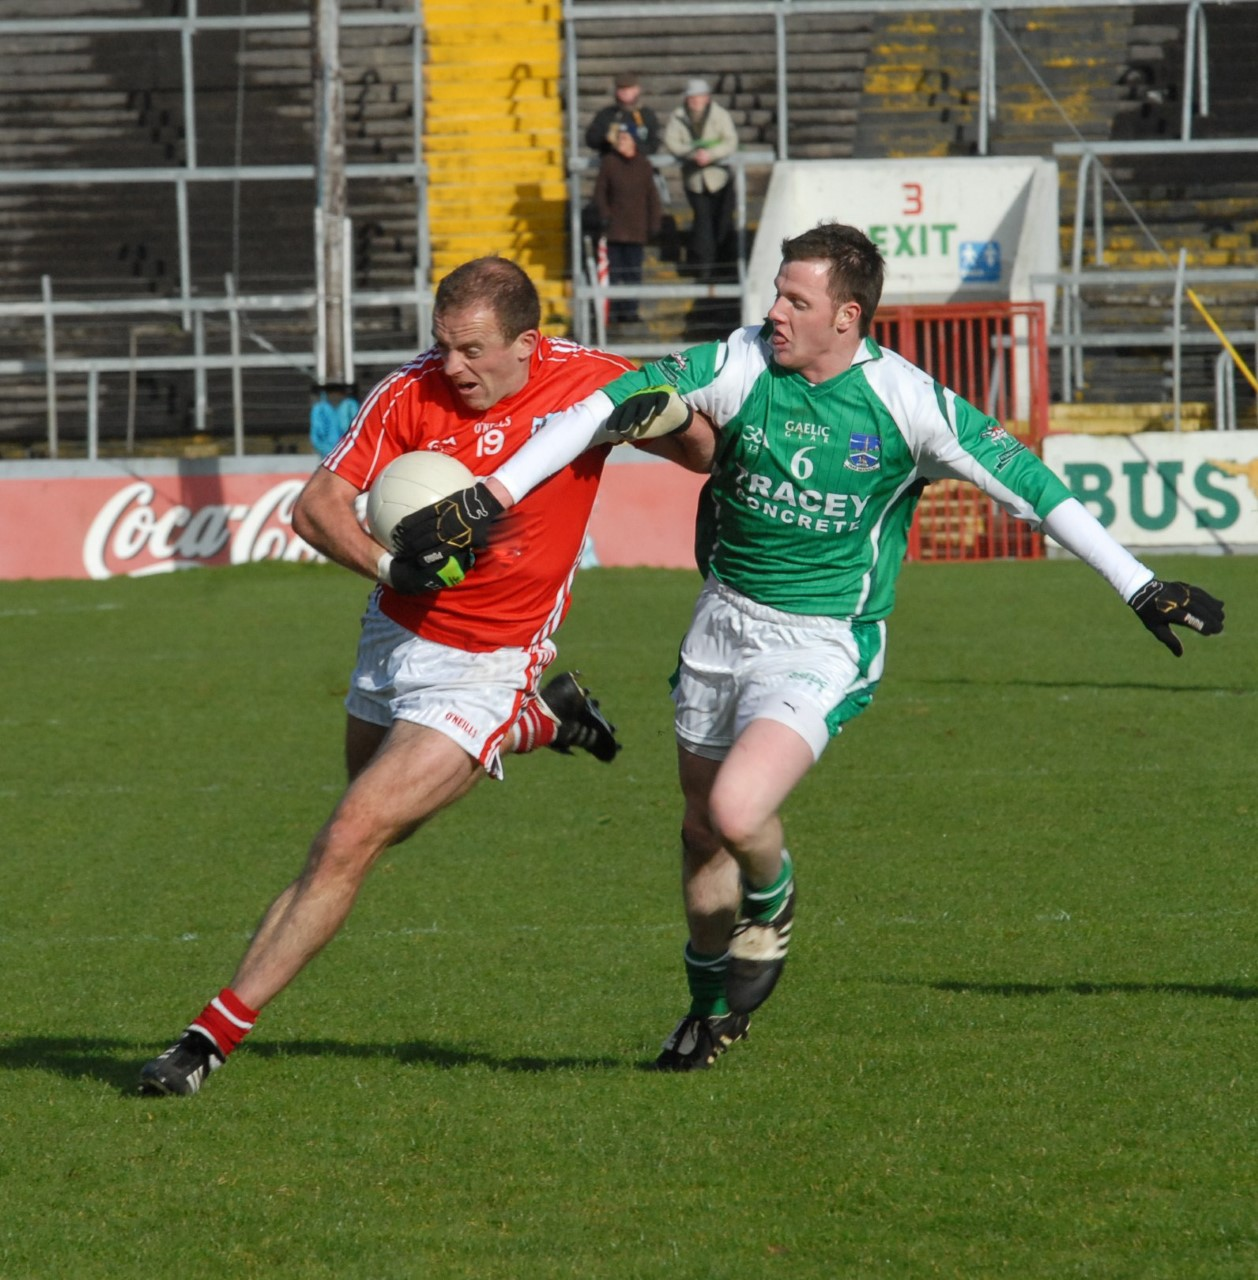 Few pics from previous Cork v Fermanagh clash